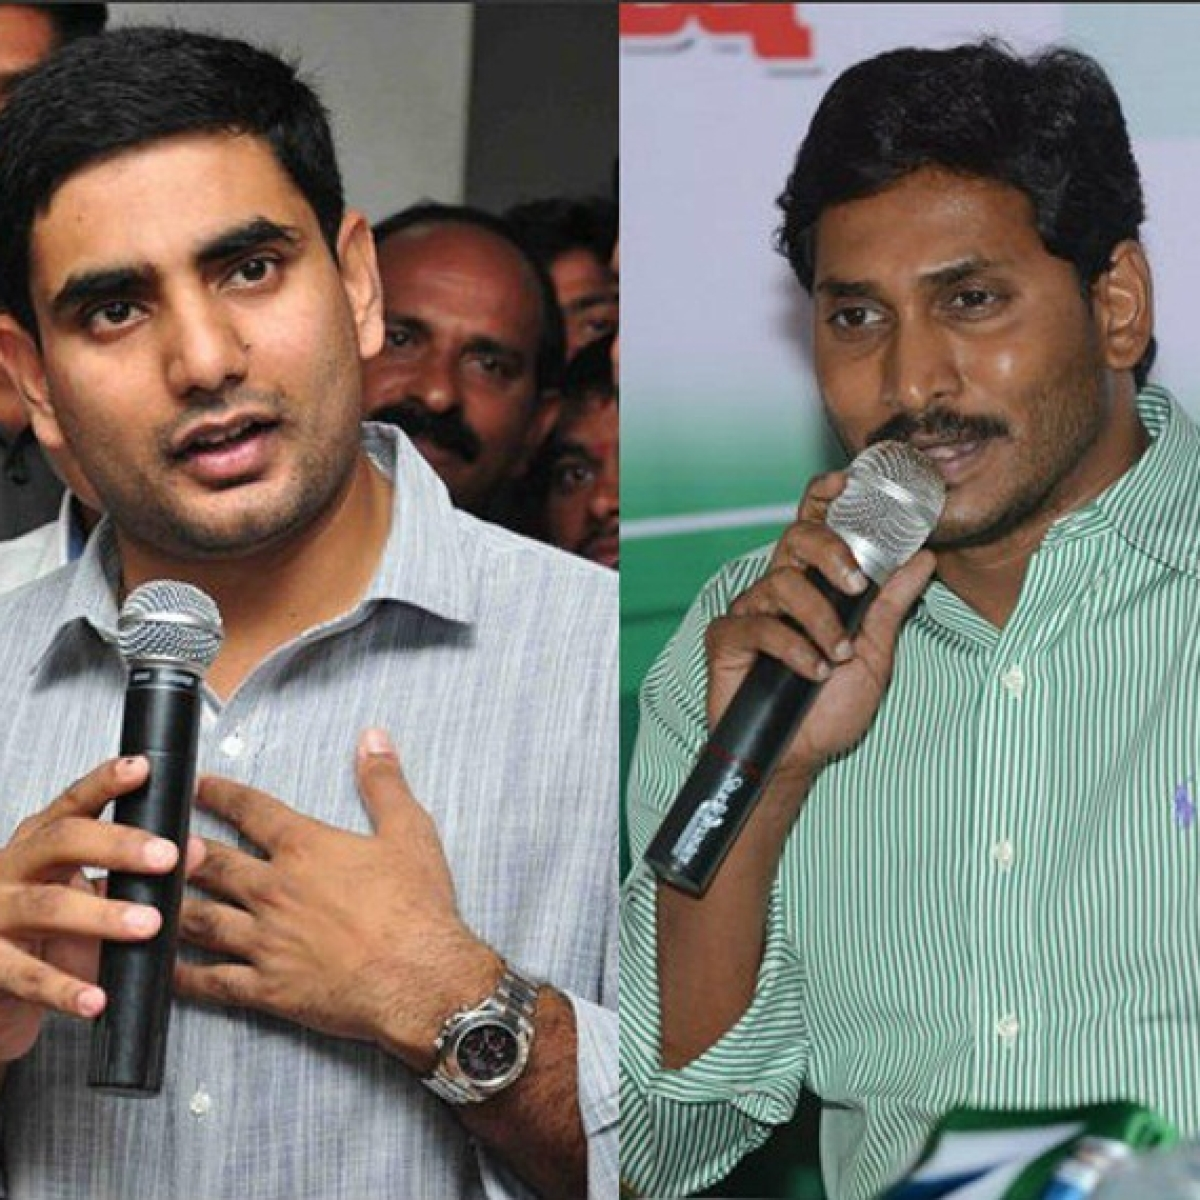 Andhra Pradesh CM was caught in paper leak in class 10: TDP leader Nara Lokesh